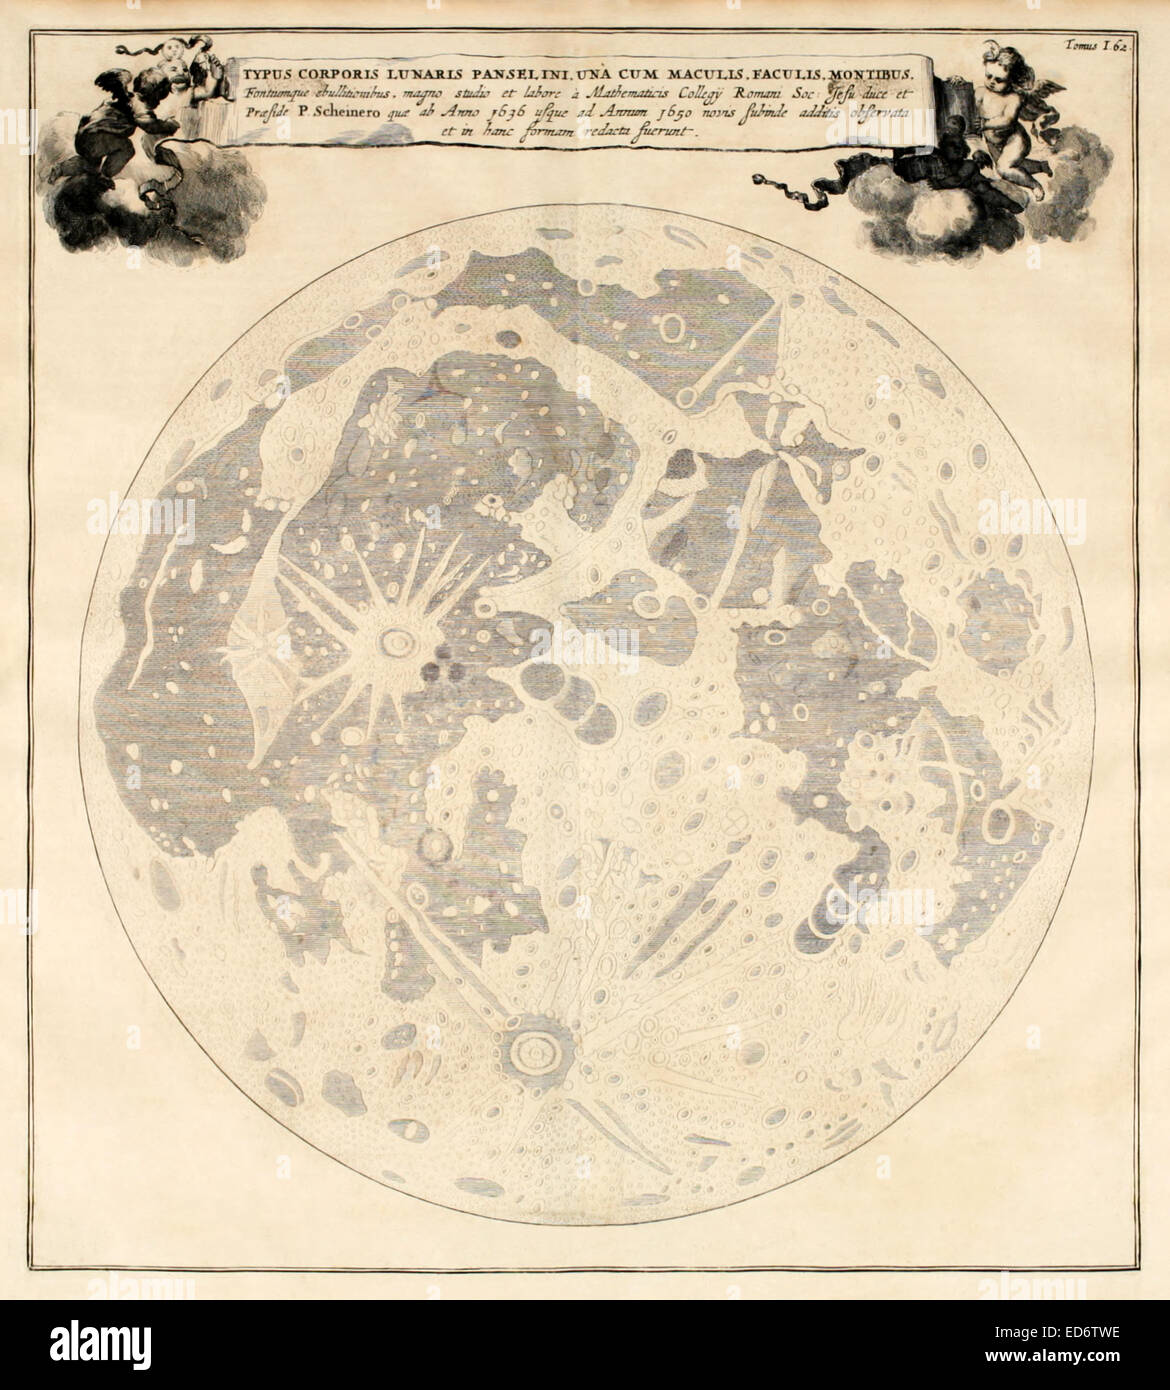 17th century illustration of the moon and its craters based on the observations of Athanasius Kircher and Christoph - Stock Image